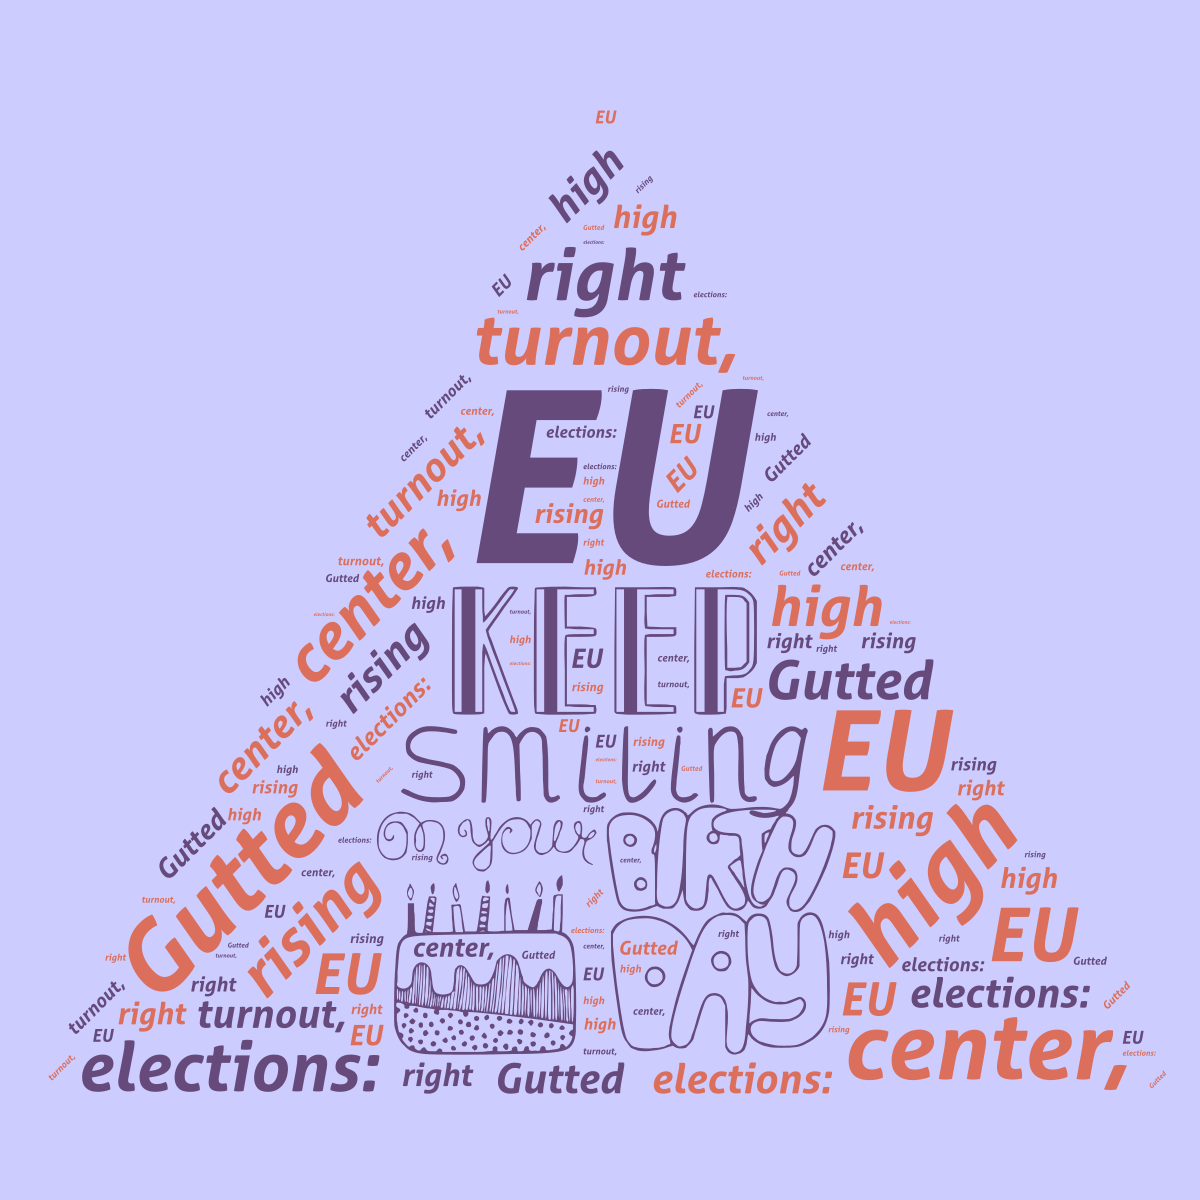 EU elections: Gutted center, high turnout, rising right